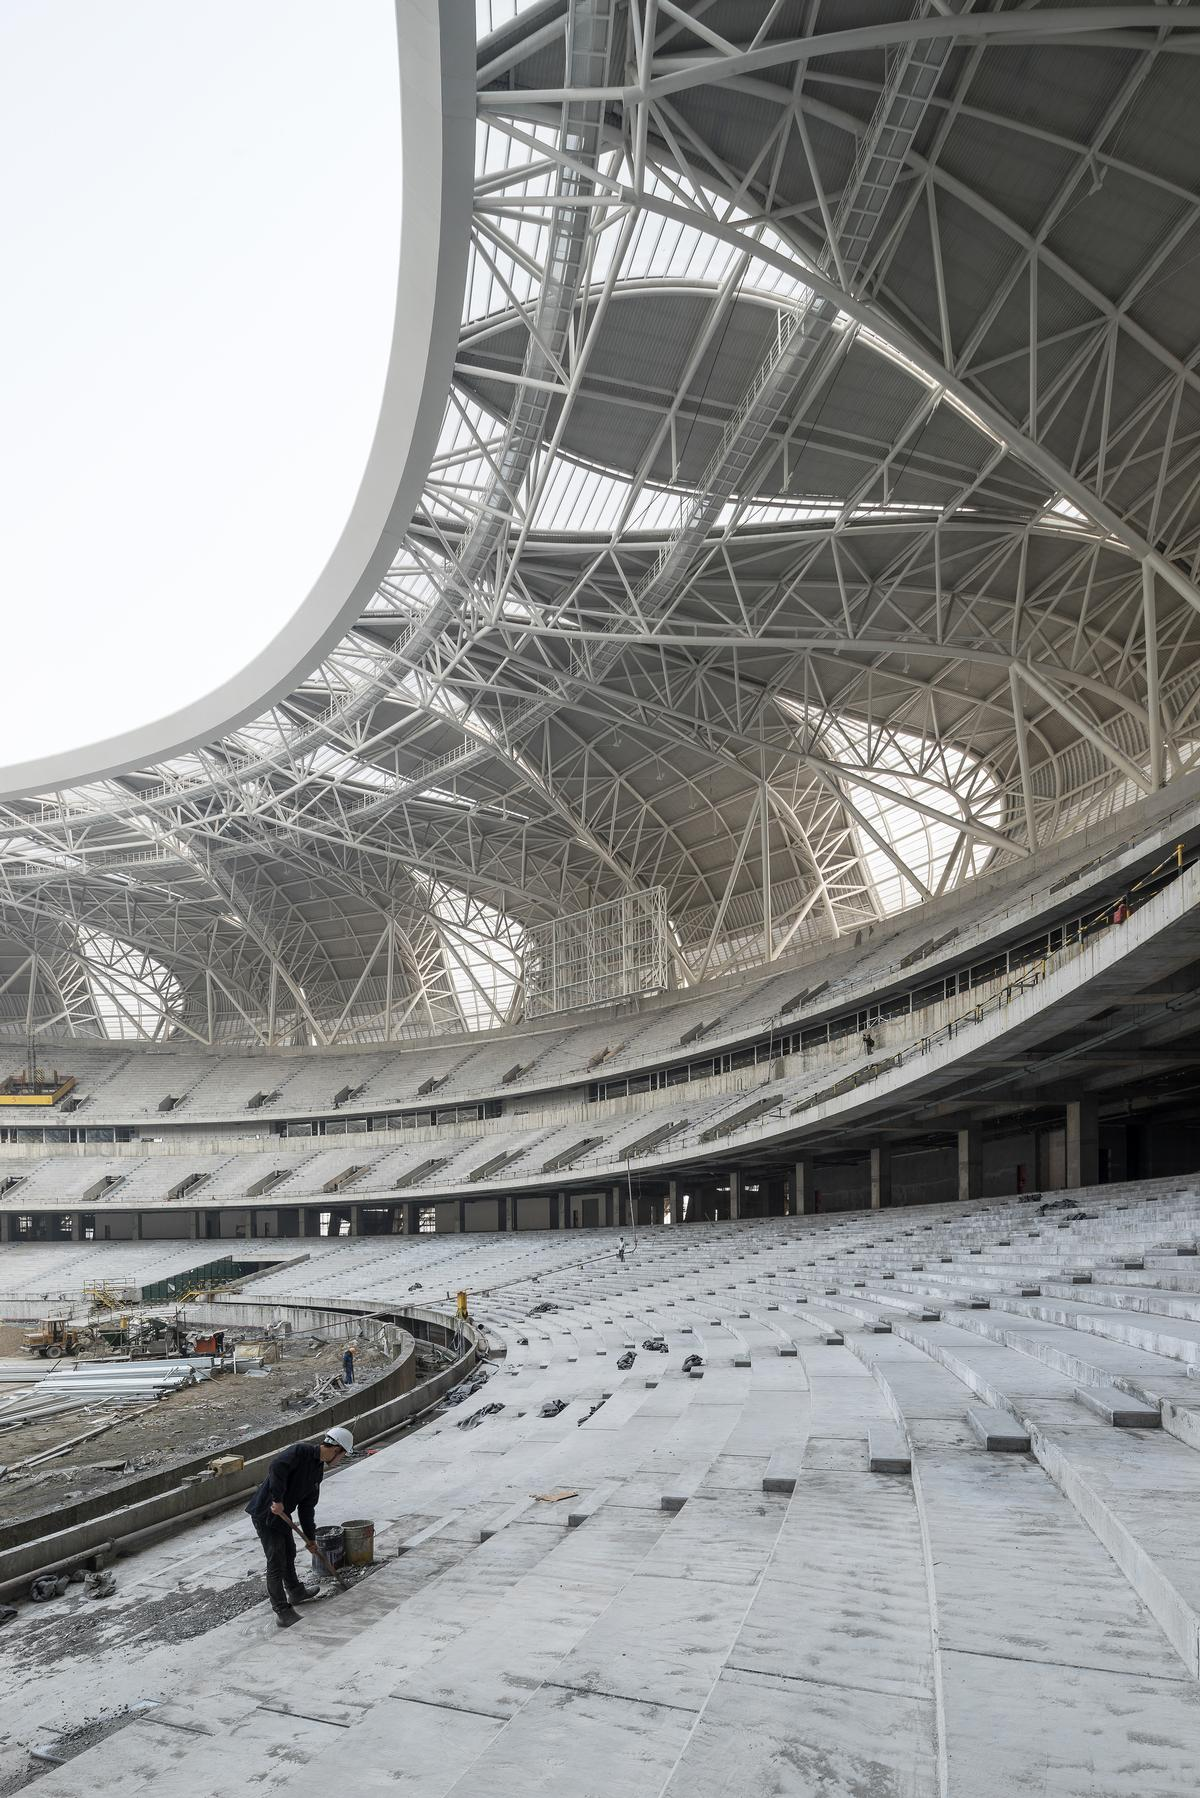 The stadium will host the 2022 Asian Games / NBBJ Design